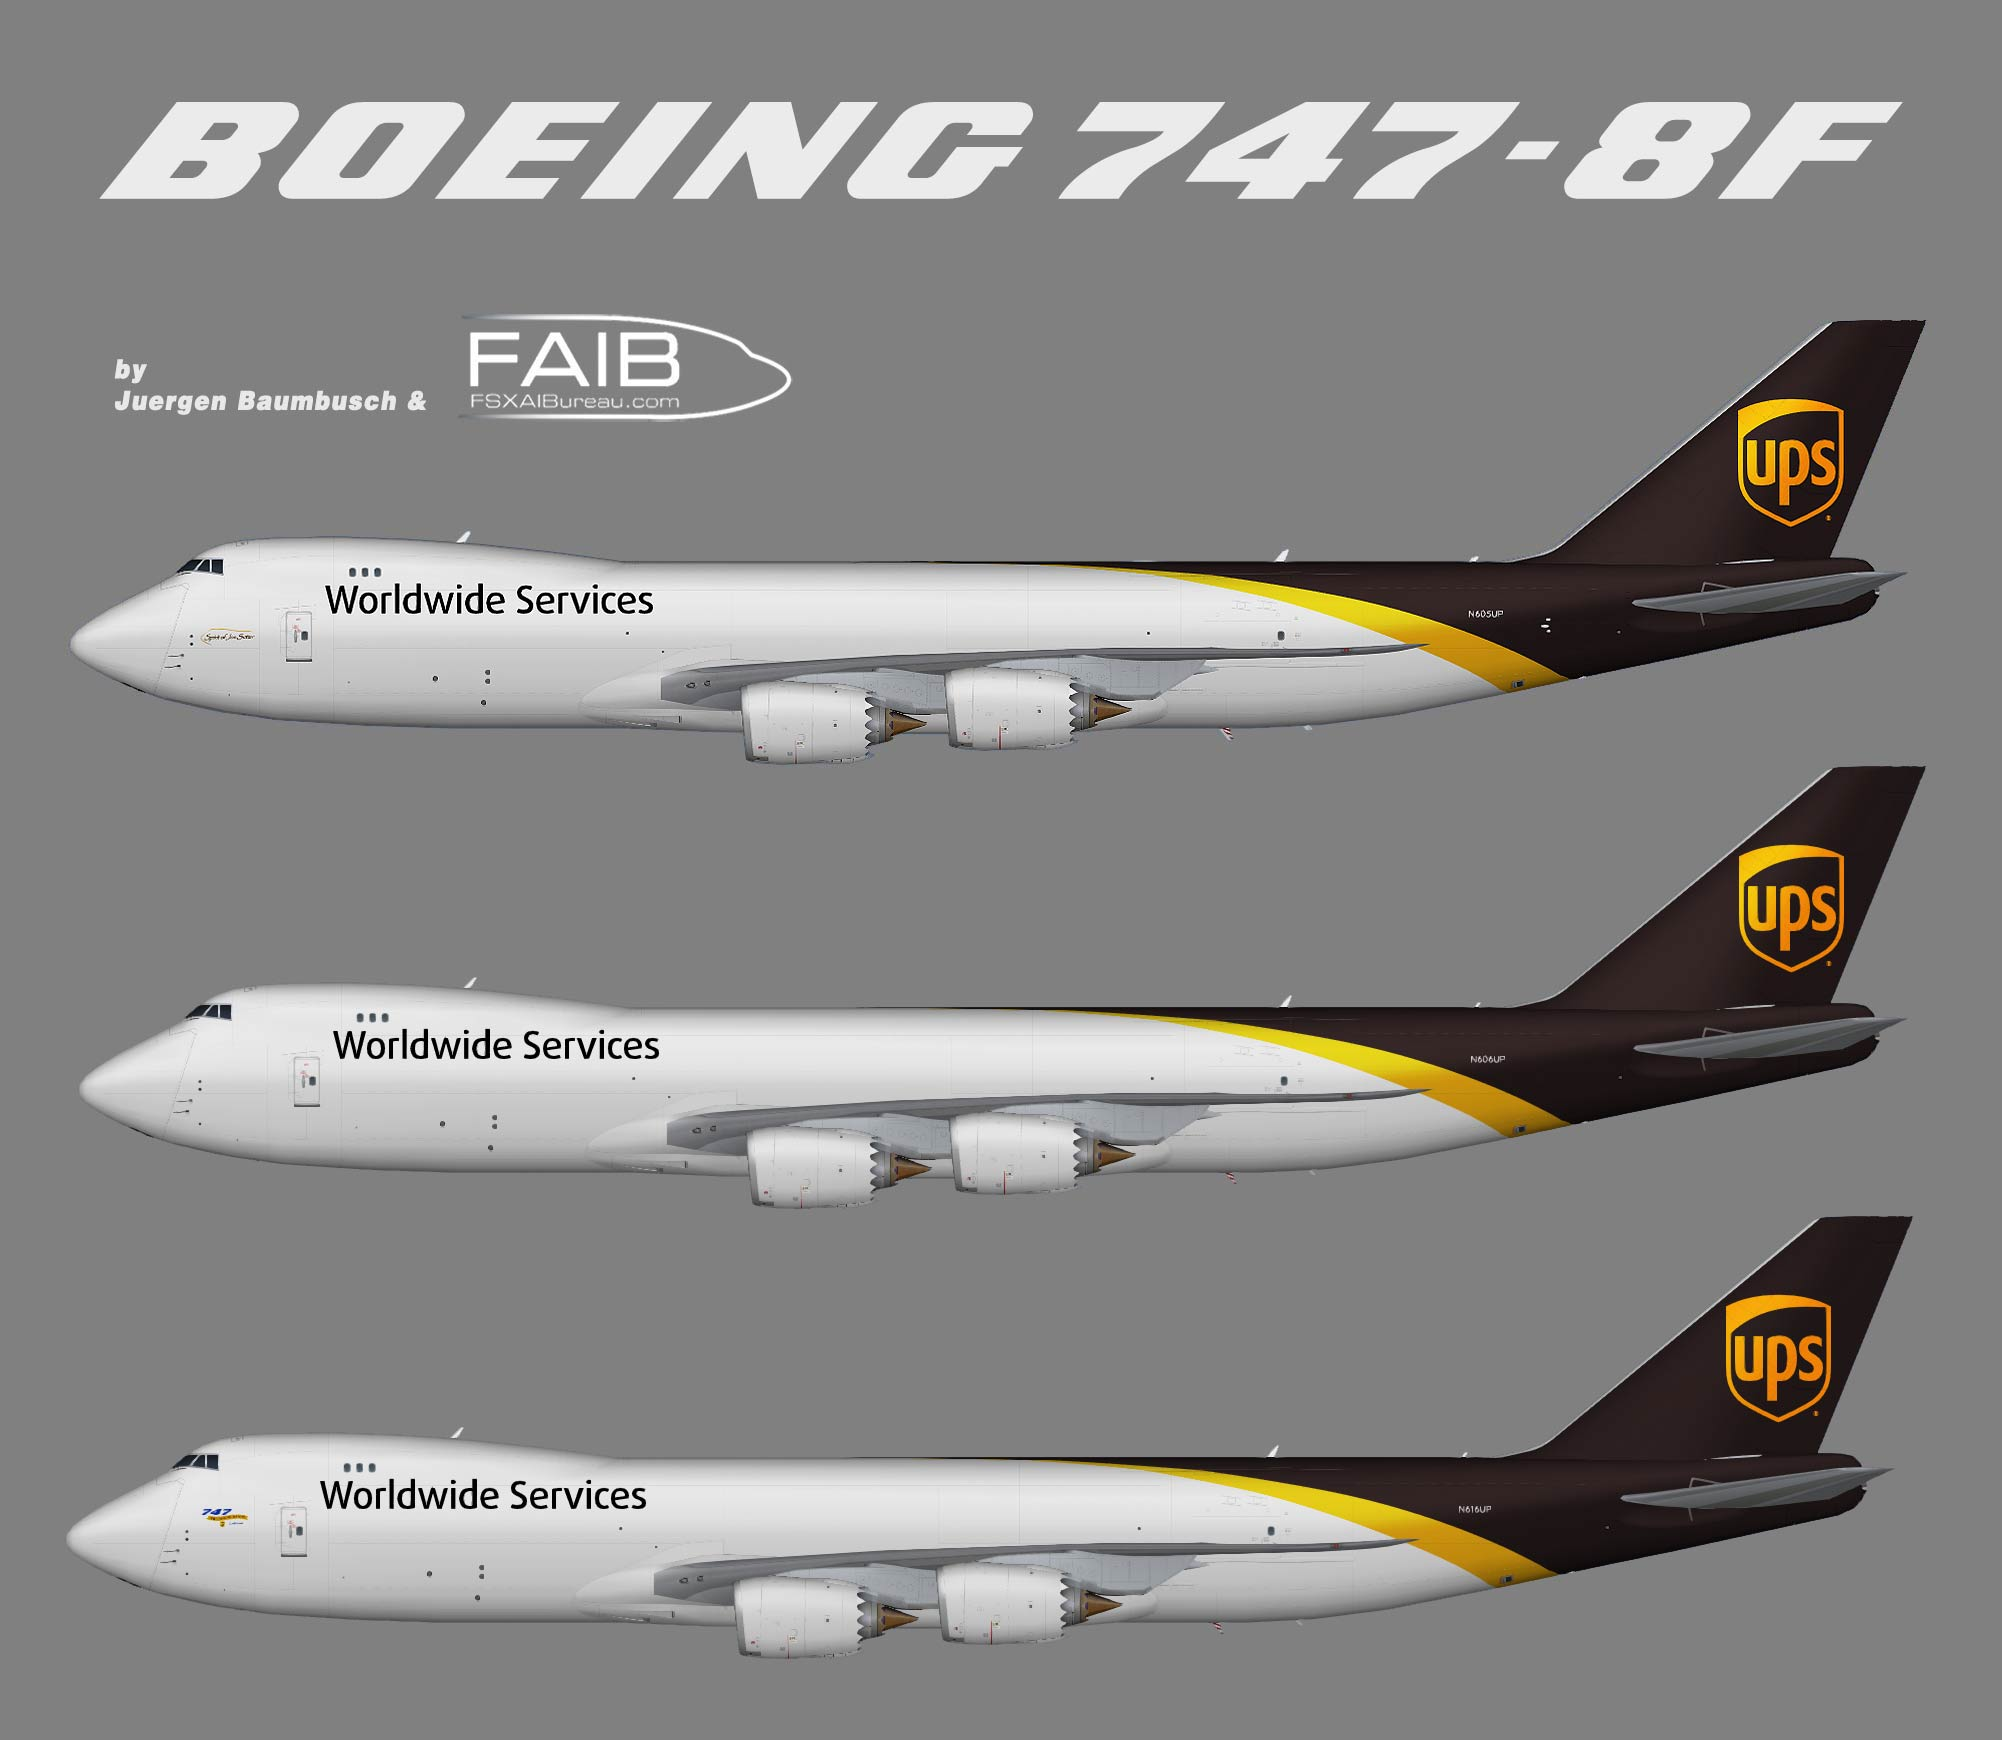 United Parcel Service Boeing 747-8F